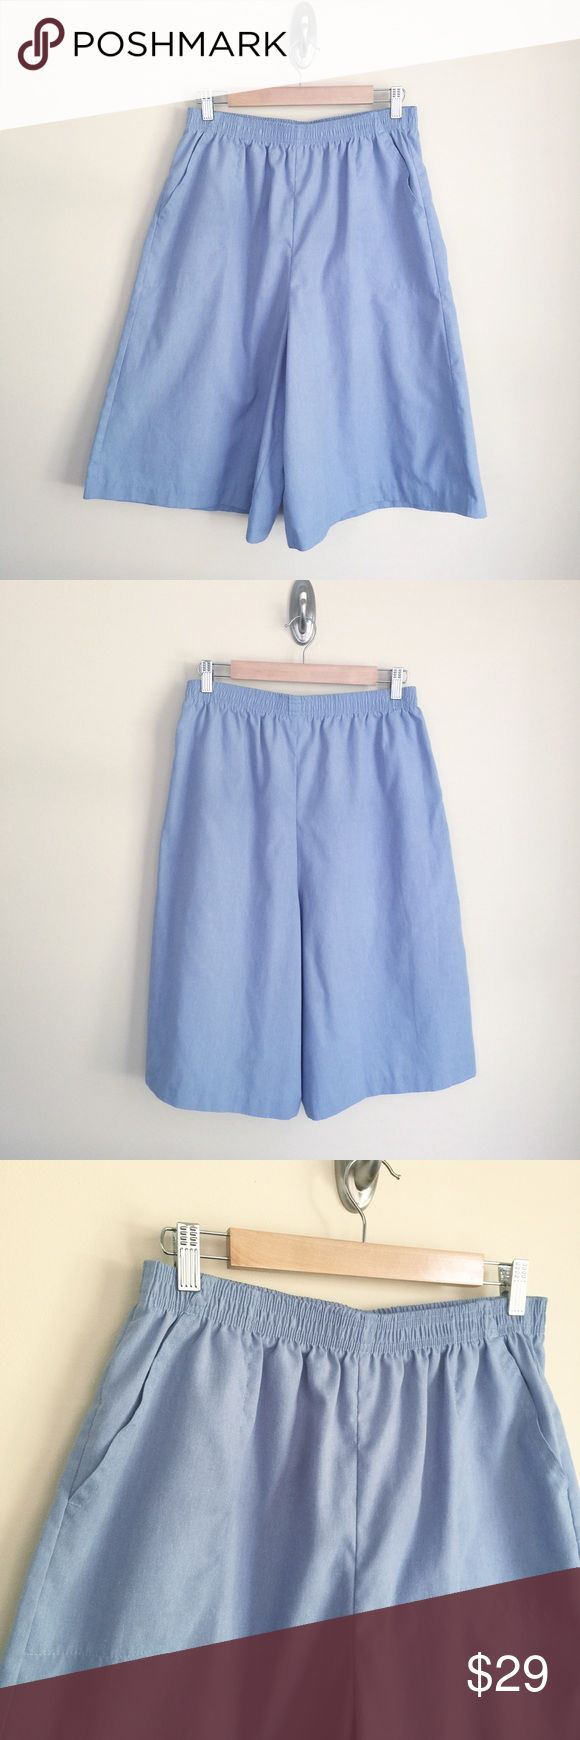 """✨Vintage✨ Carriage Court high waist culottes sz L ✨Vintage✨ Carriage Court Sport High waist culottes, size L.  Vintage sizing runs small, follow measurements for fit. Softly heathered light blue, lightweight fabric, very high waist, full cut, wide legs, elastic waist, side pockets with seamed outline (photo 4). Condition:  excellent vintage. Material:  65% polyester/35% cotton. Measurements (approximate, taken laying flat): length 26"""", inseam 12.5"""", rise 15"""", flat unstretched waist 14"""", flat…"""